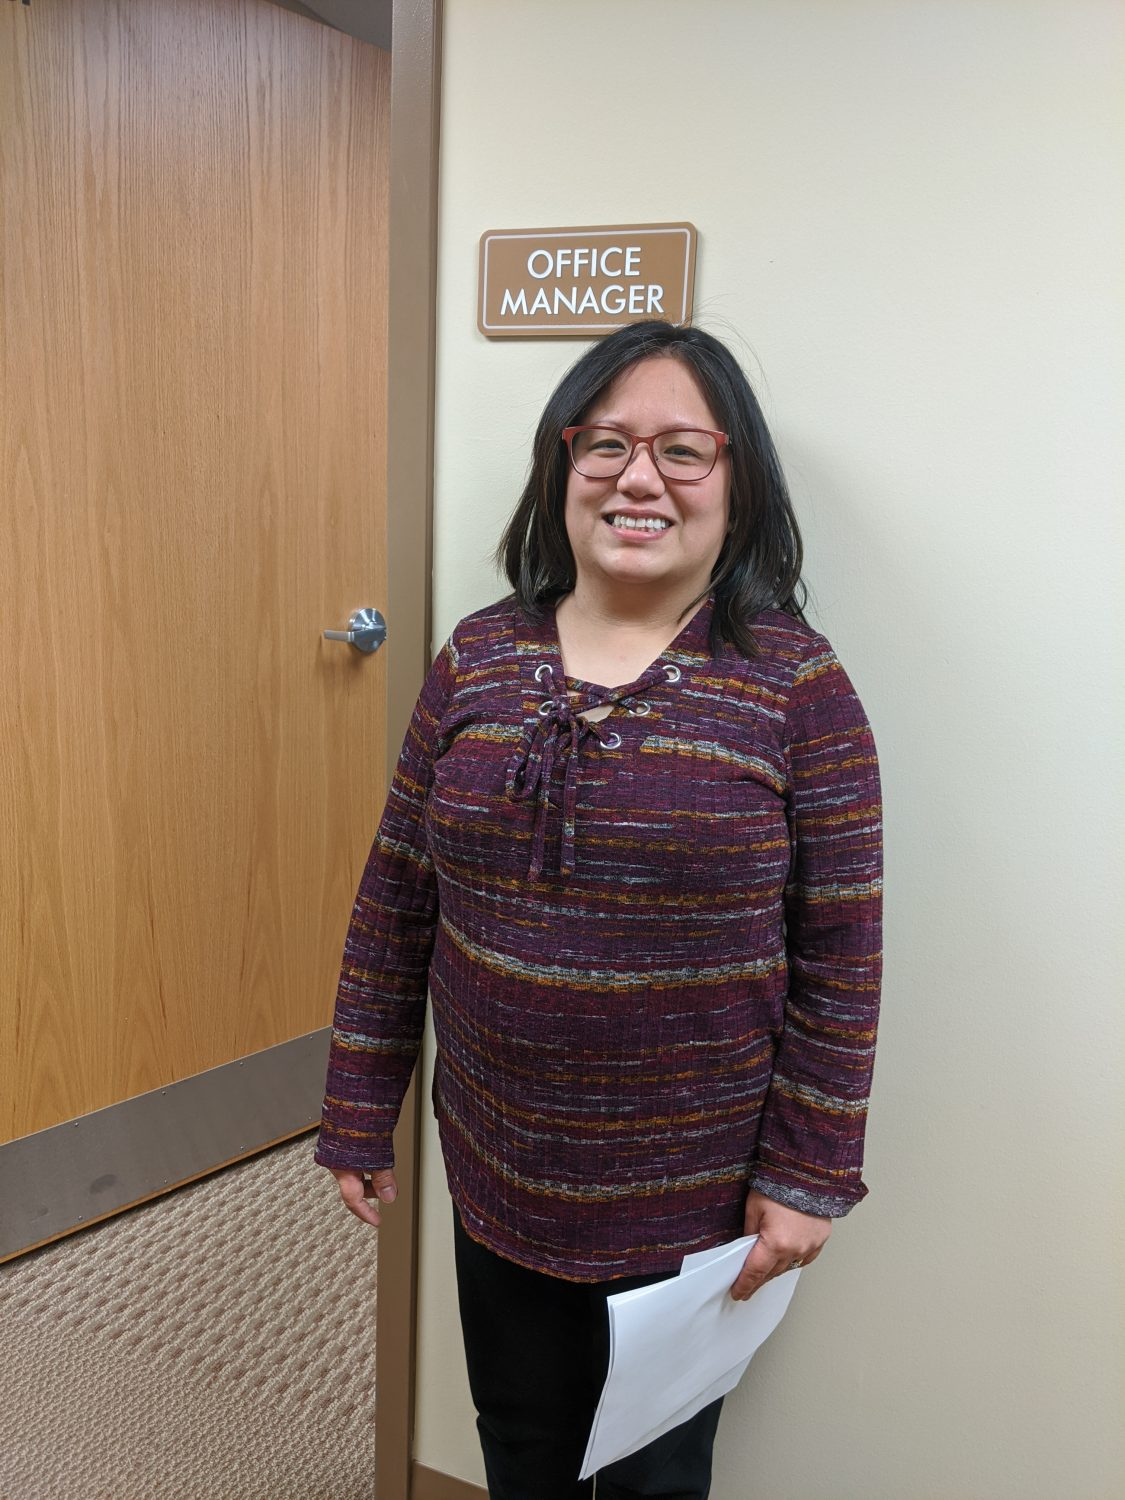 Lacey Creek Welcomes New Business Office Manager